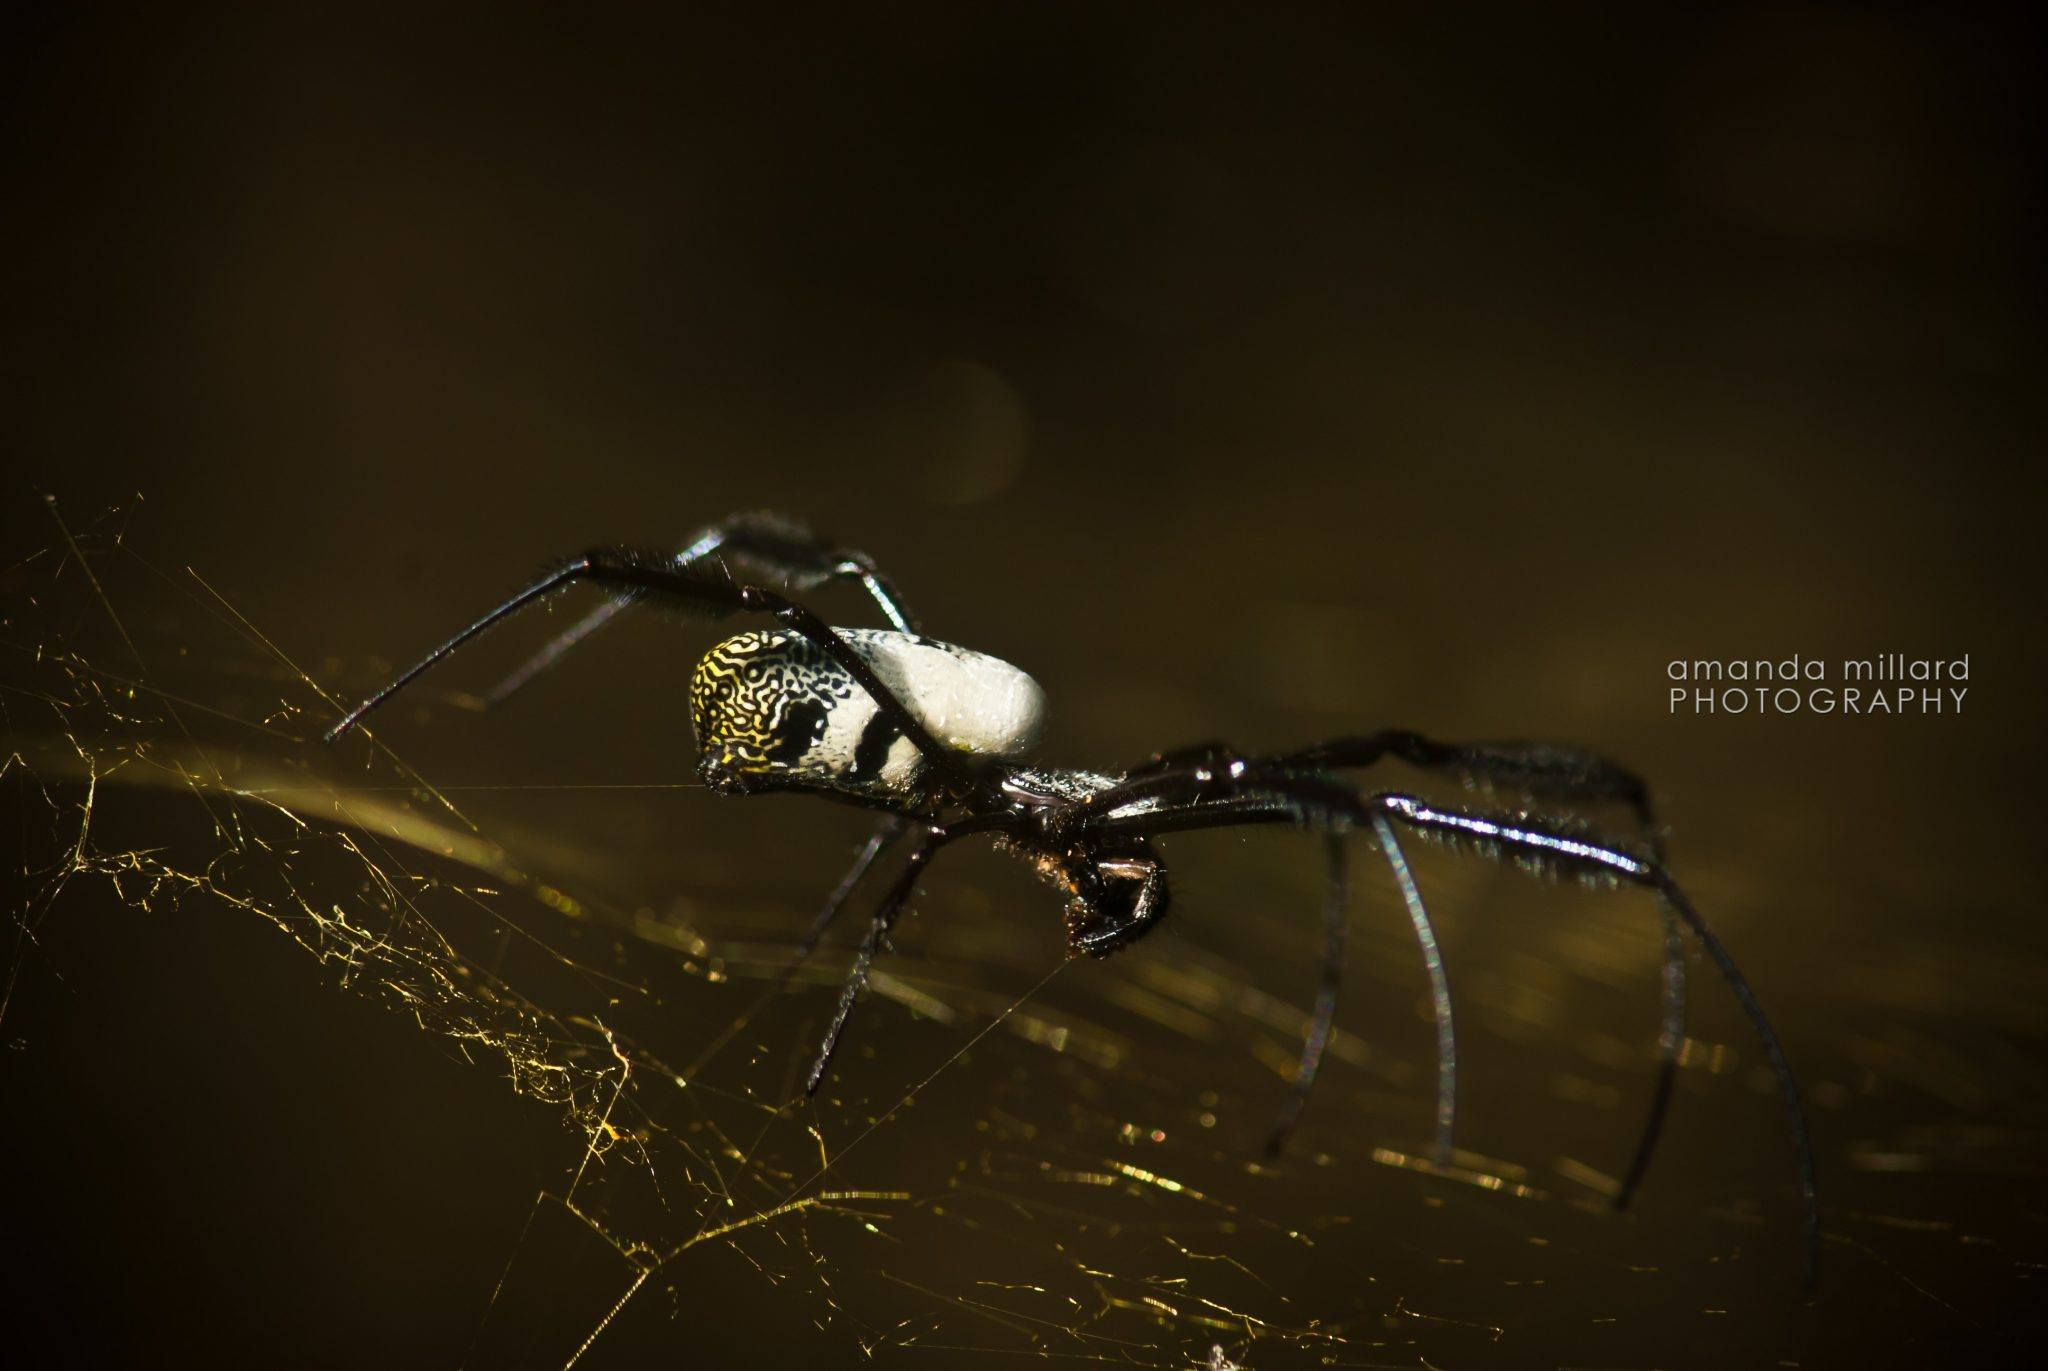 MACRO: Golden Orb Spider